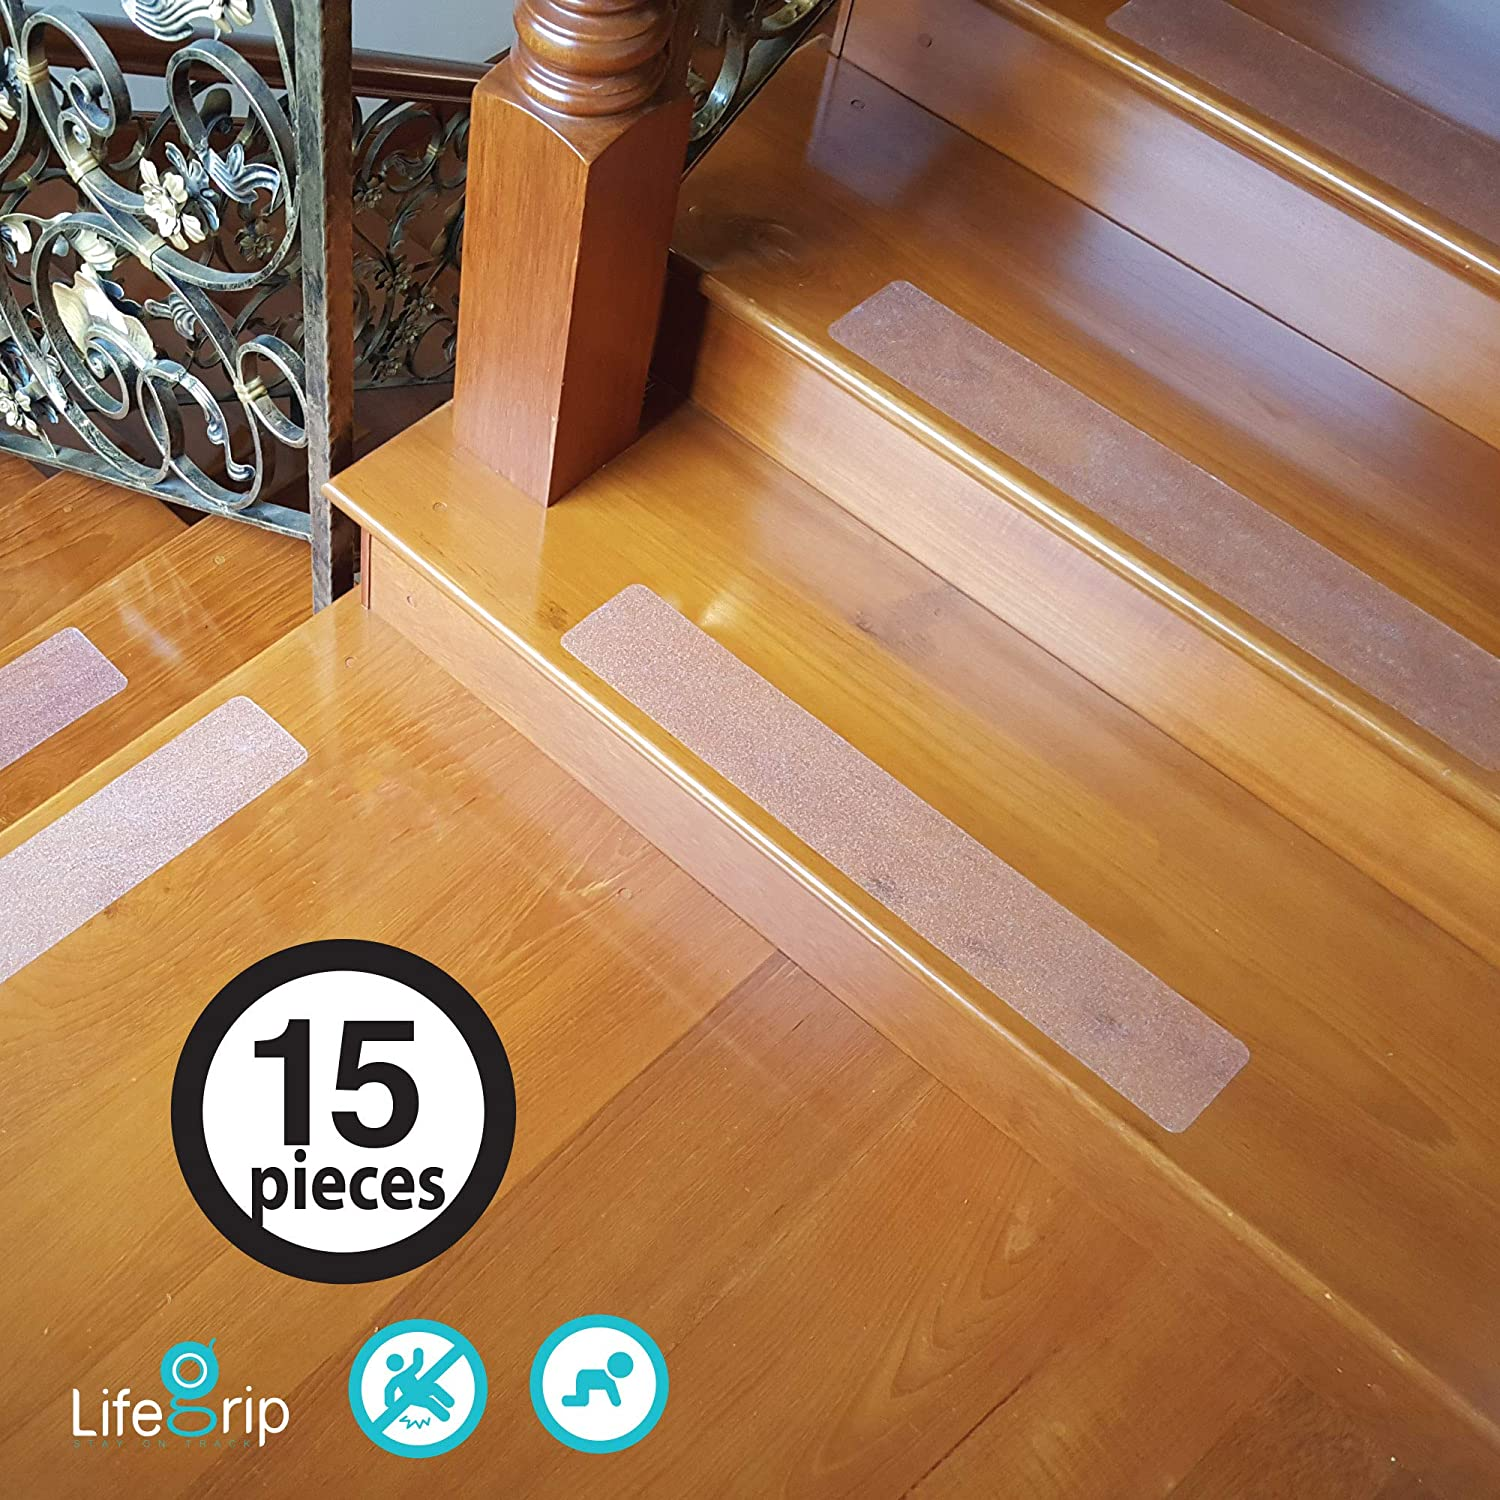 15Pieces LifeGrip Anti Slip Safety Stair Treads Non Slip Tape 4 X 28 Soft for Bare Foot Clear